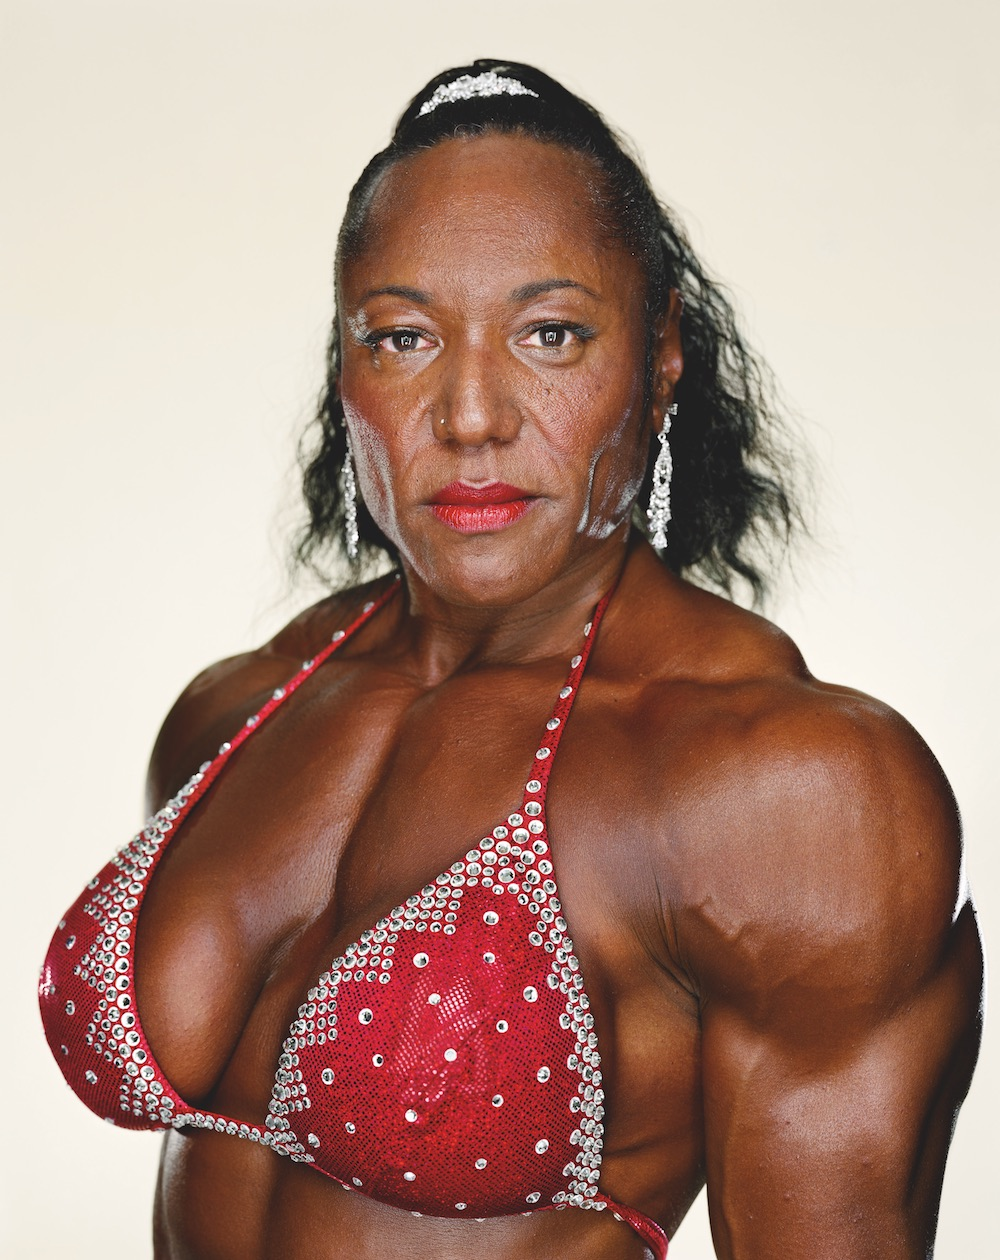 Carmella Cureton, Atlantic City, NJ by Martin Schoeller, 2007 © Martin Schoeller